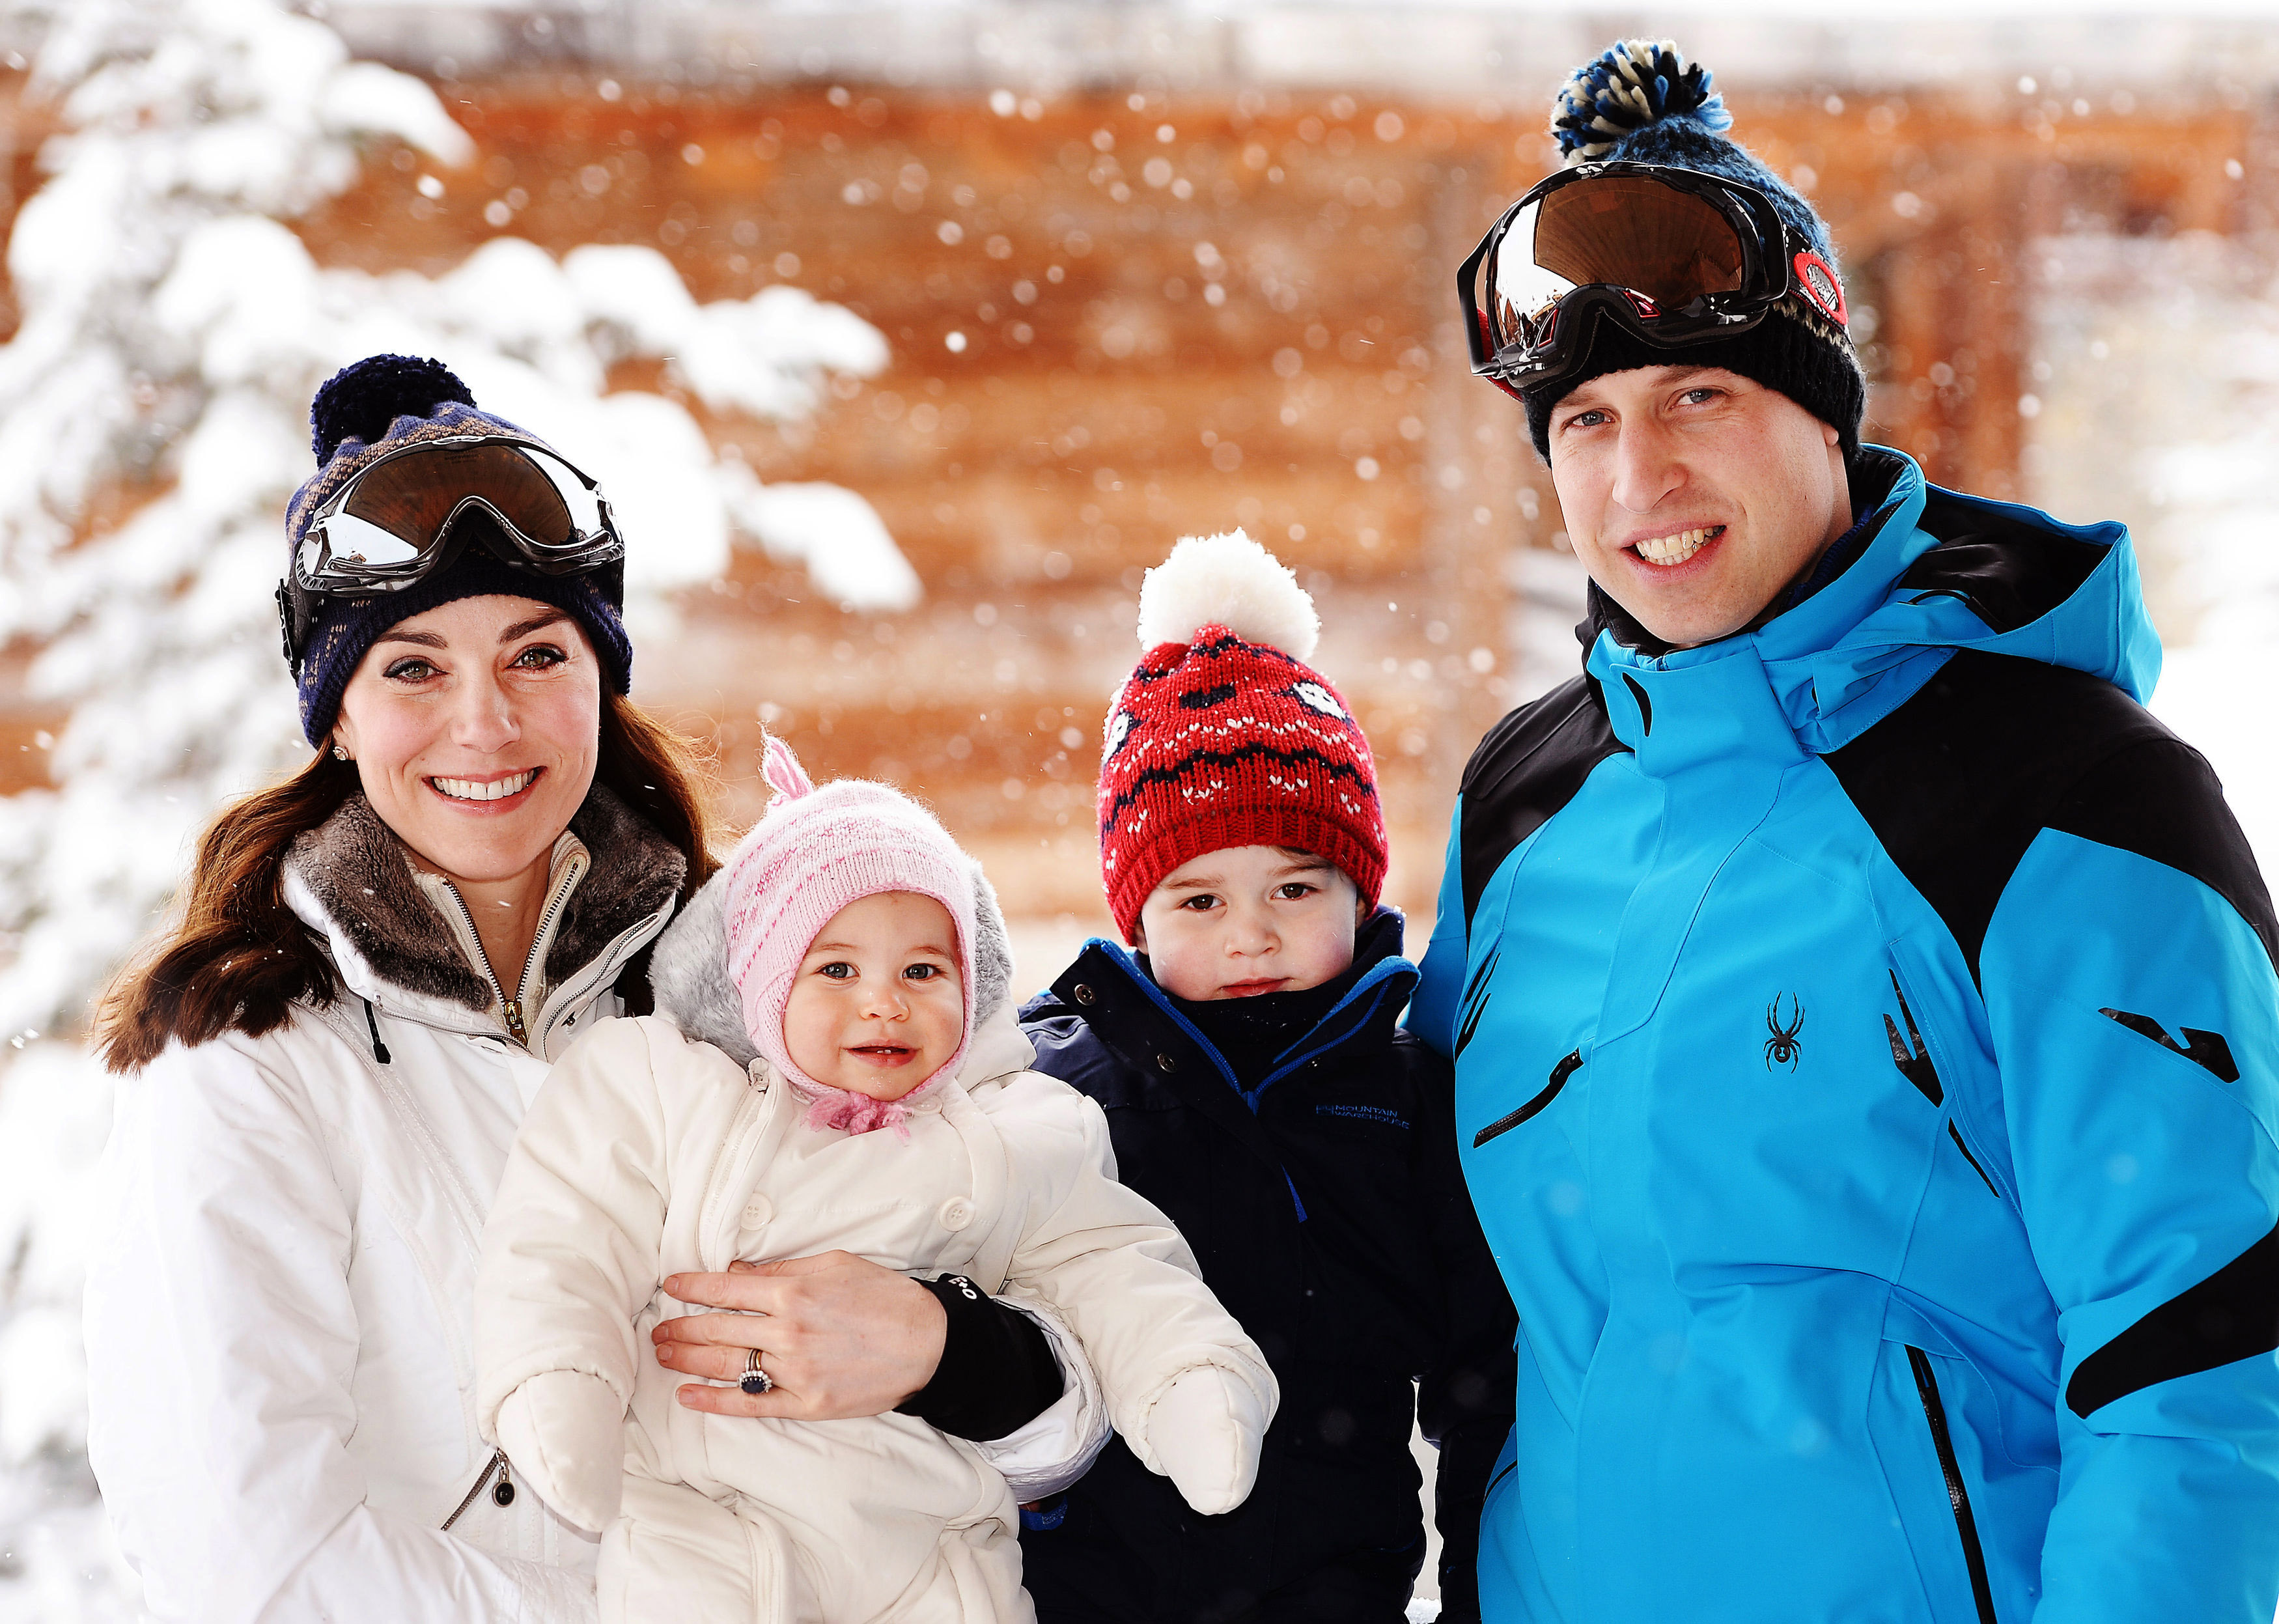 Catherine, Duchess of Cambridge, and Prince William, Duke of Cambridge, with their children Princess Charlotte and Prince George, enjoy a short private skiing break in the French Alps on March 3, 2016.